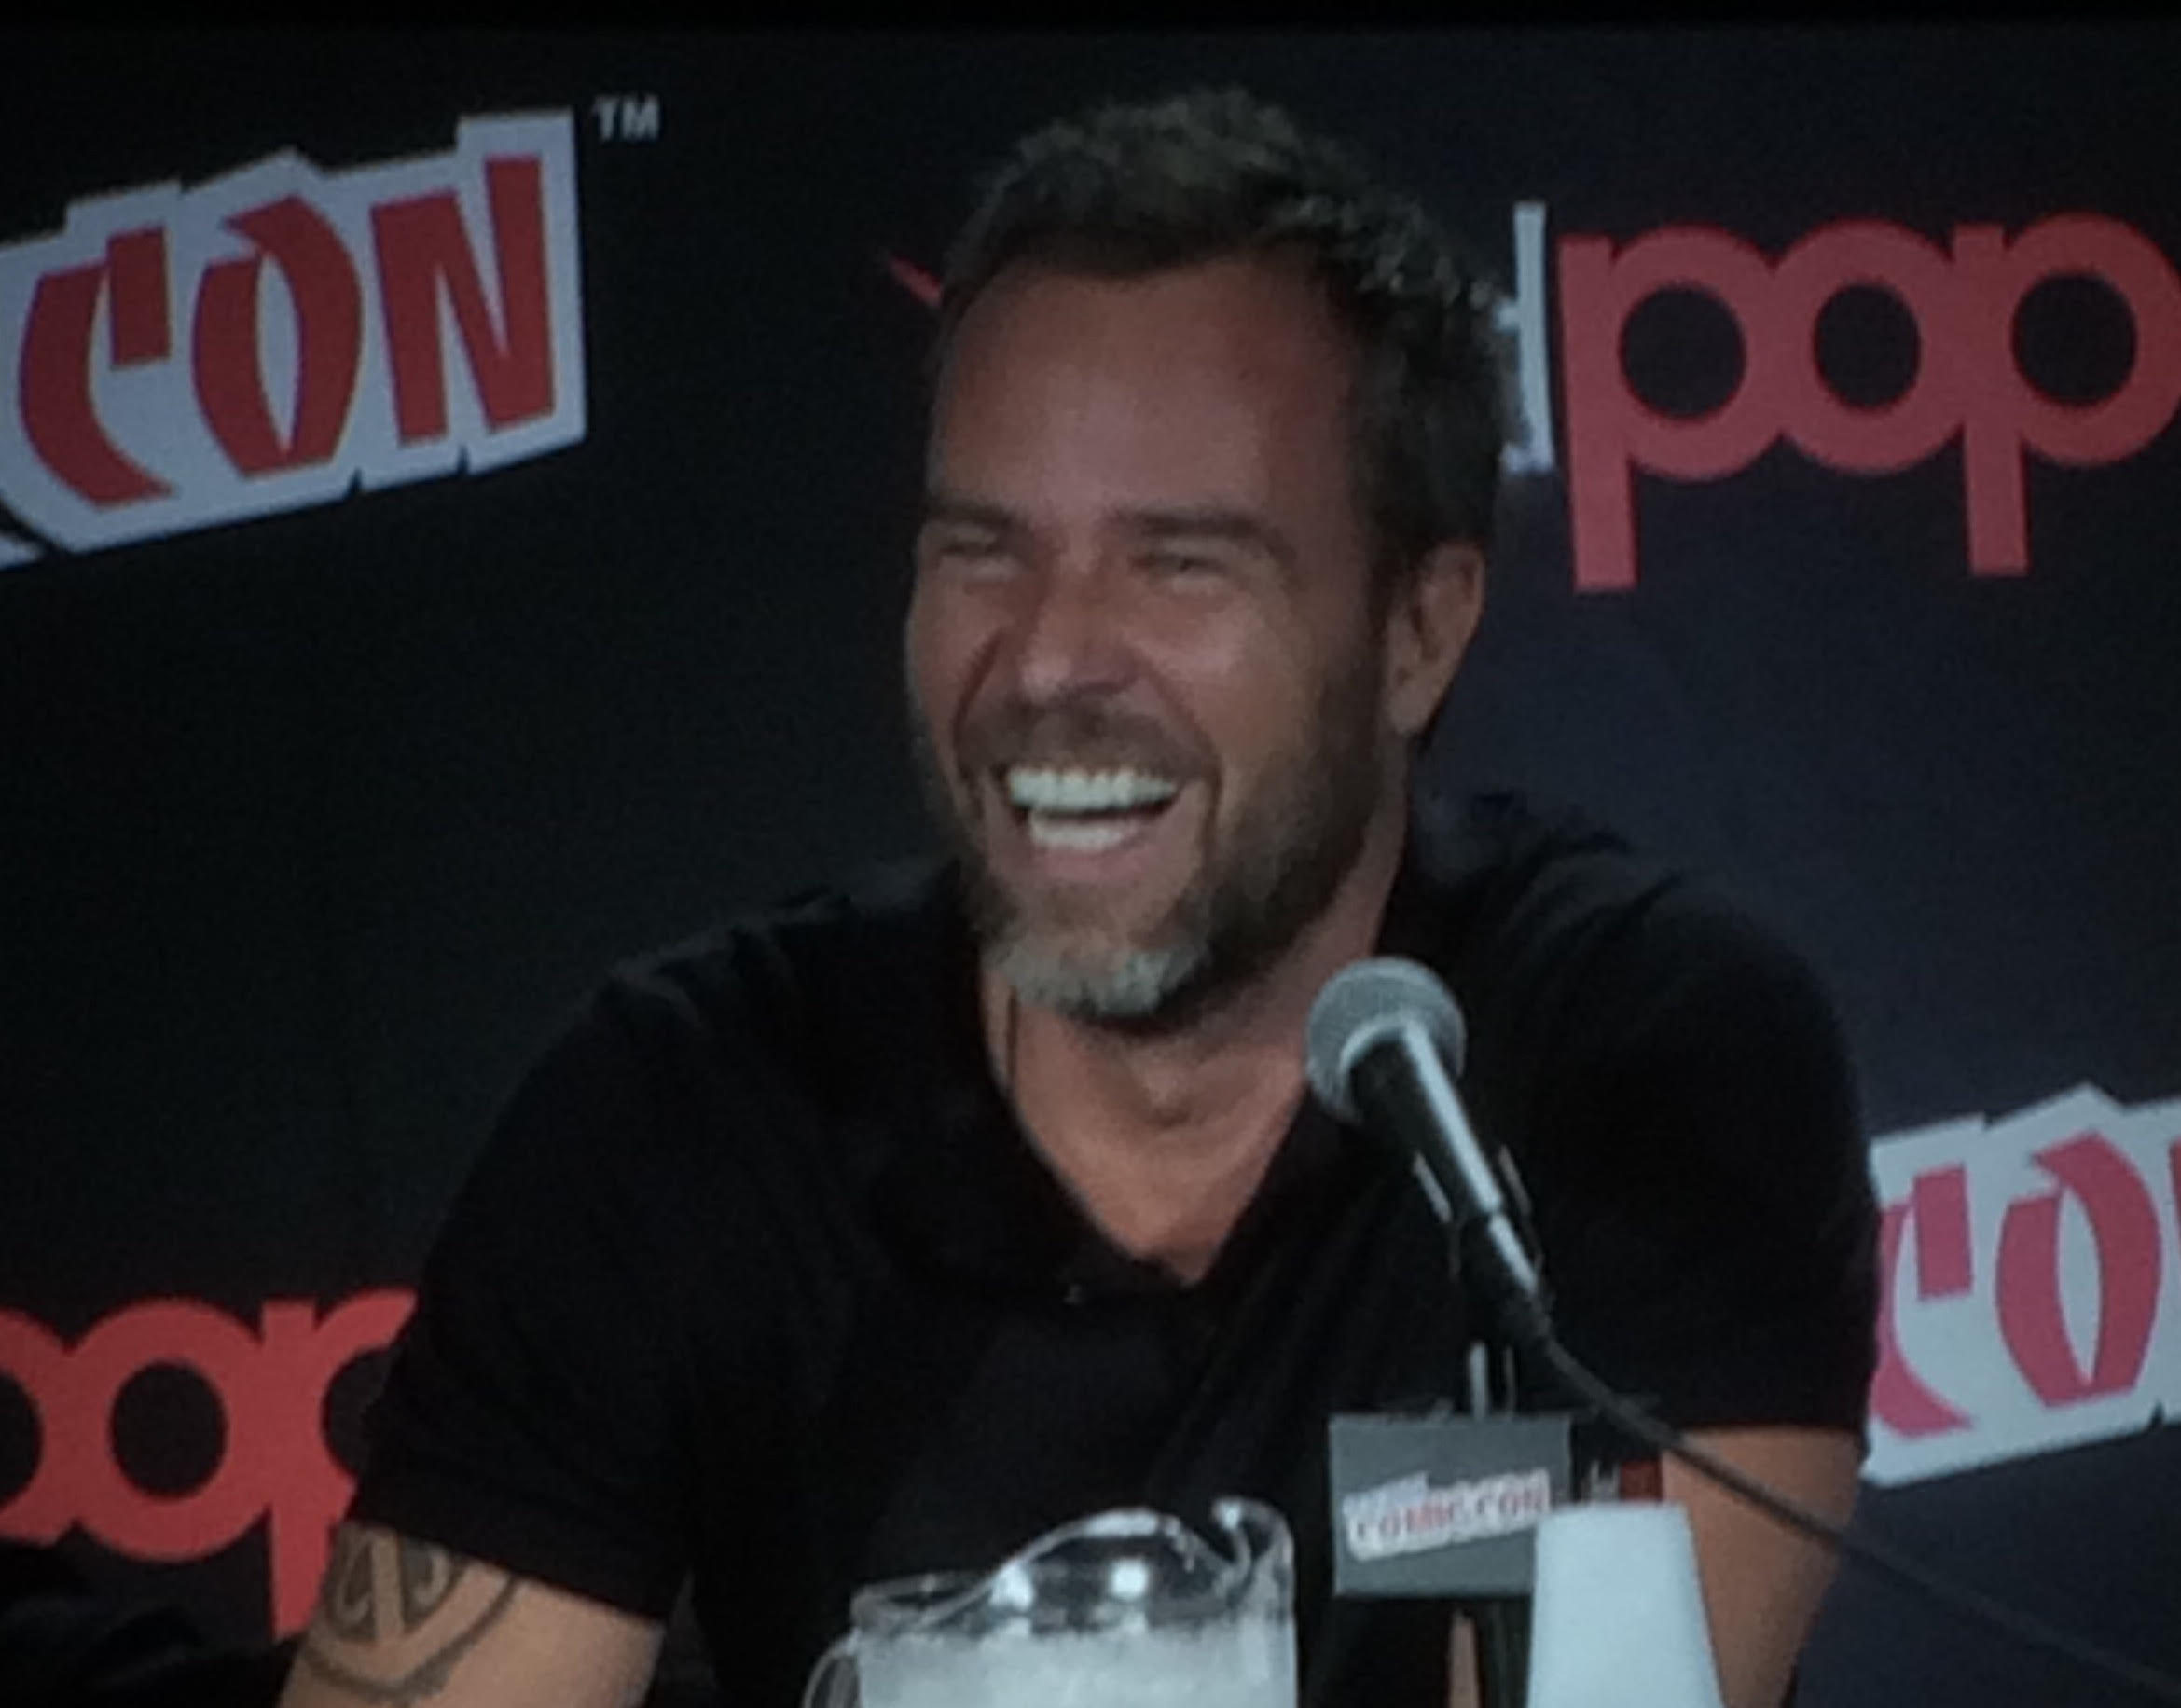 jr bourne photoshootjr bourne instagram, jr bourne in arrow, jr bourne filmography, jr bourne wikipedia, jr bourne личная жизнь, jr bourne tumblr, jr bourne gif, jr bourne ncis, jr bourne csi, jr bourne photoshoot, jr bourne facebook